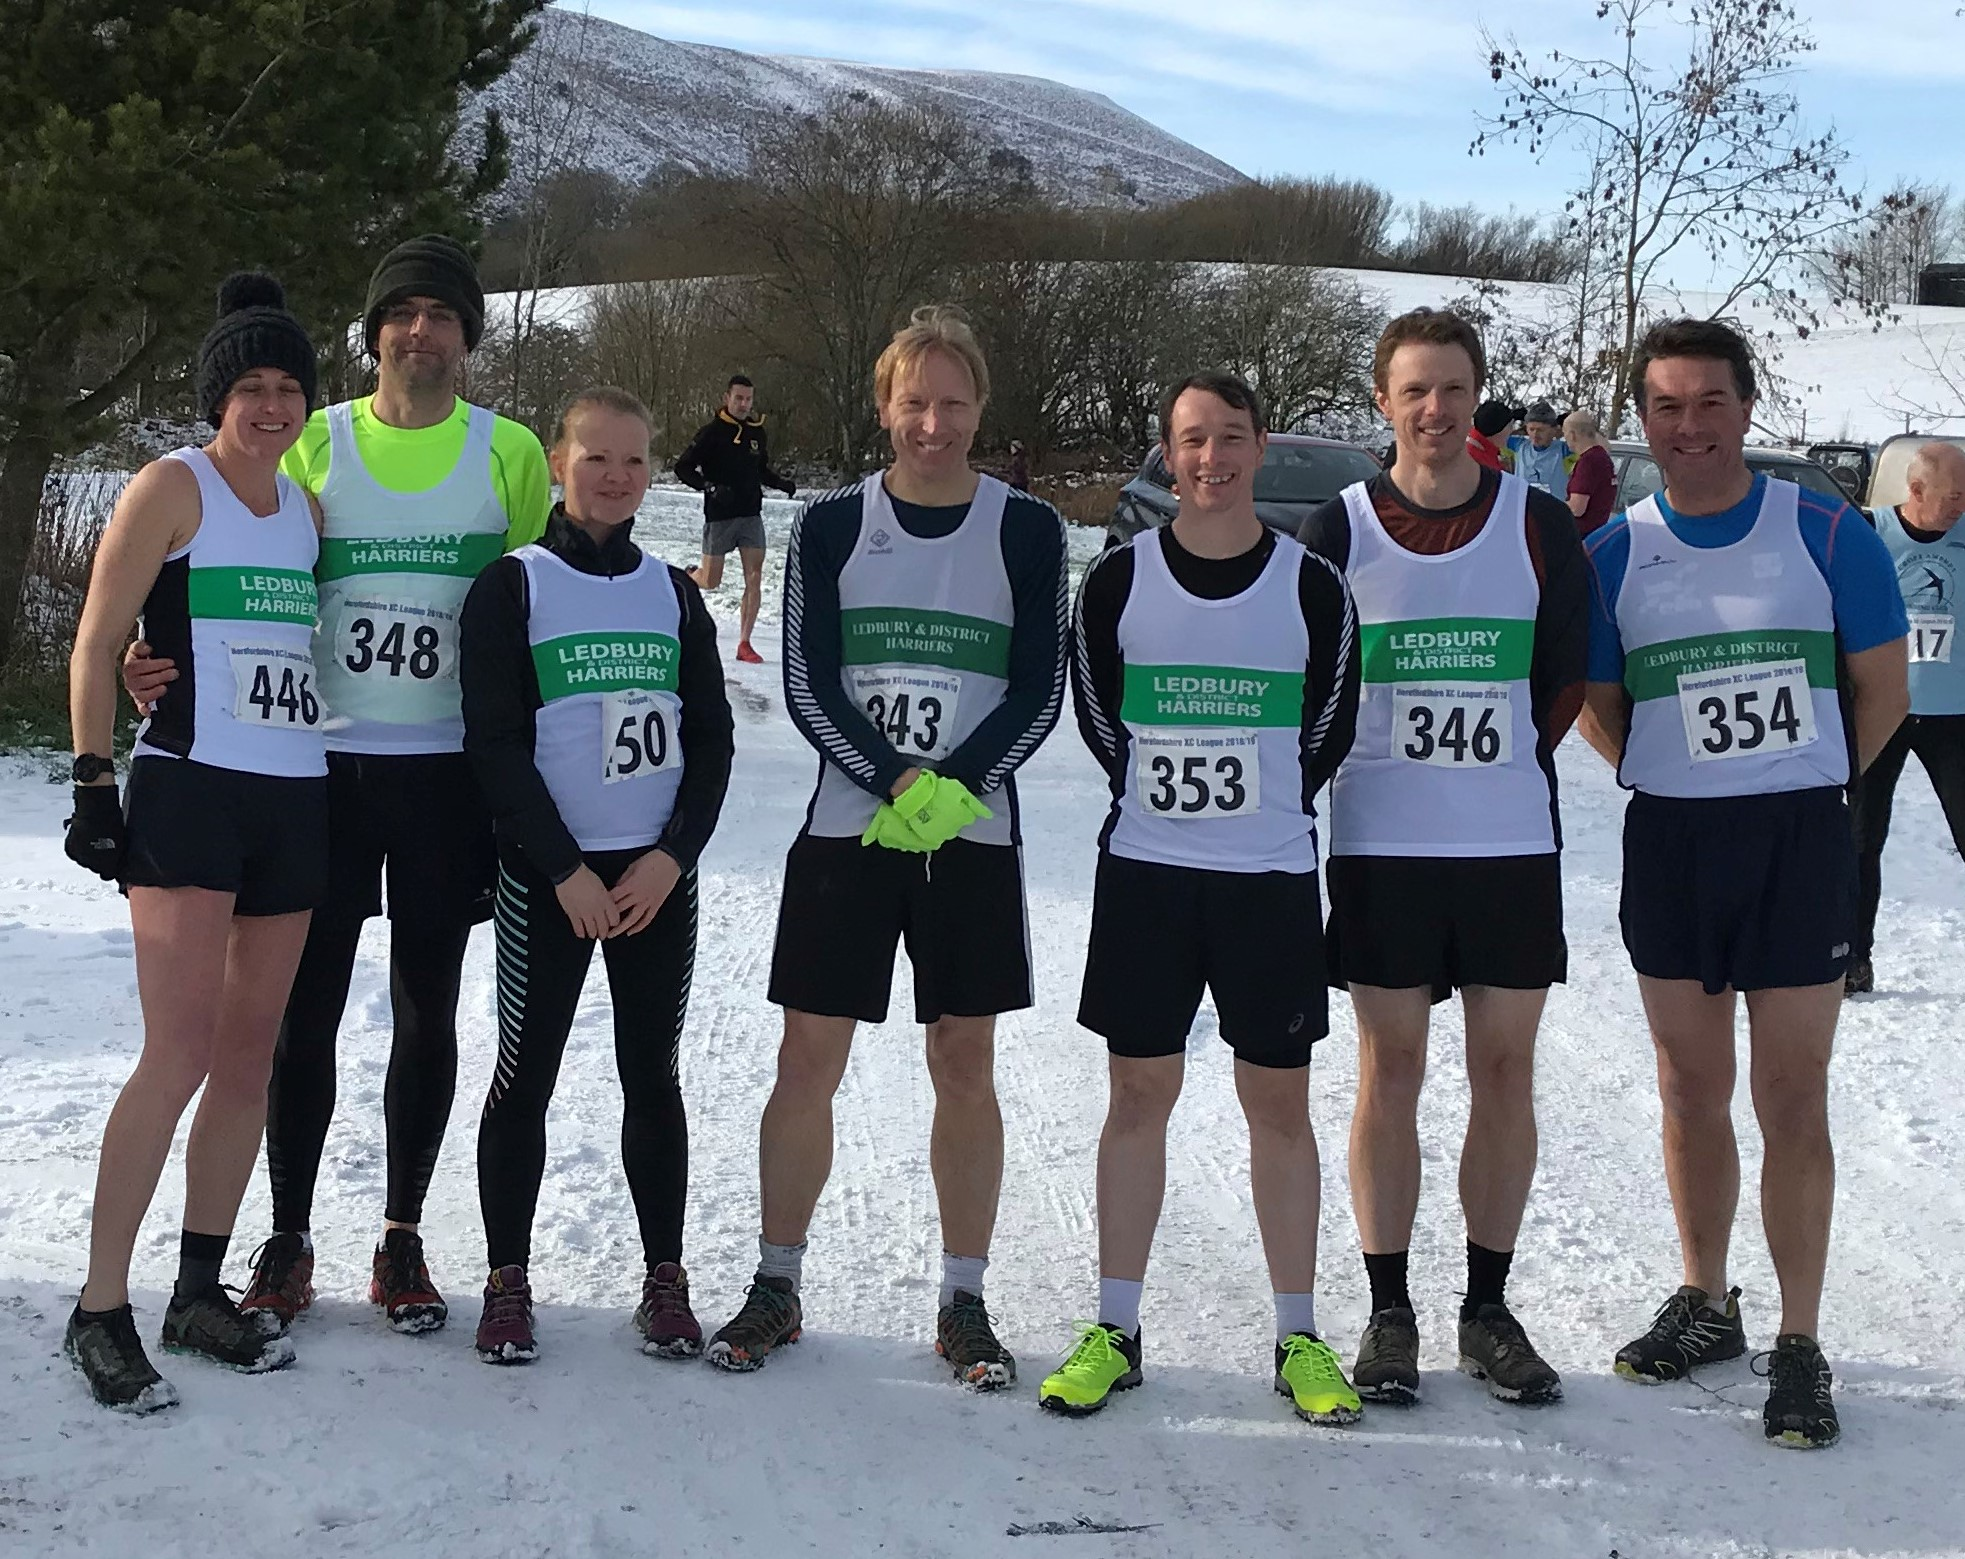 Ledbury Harriers' runners at the penultimate race in the 2018-2019 season of the Herefordshire Cross Country League at Fforest Fields near Builth Wells